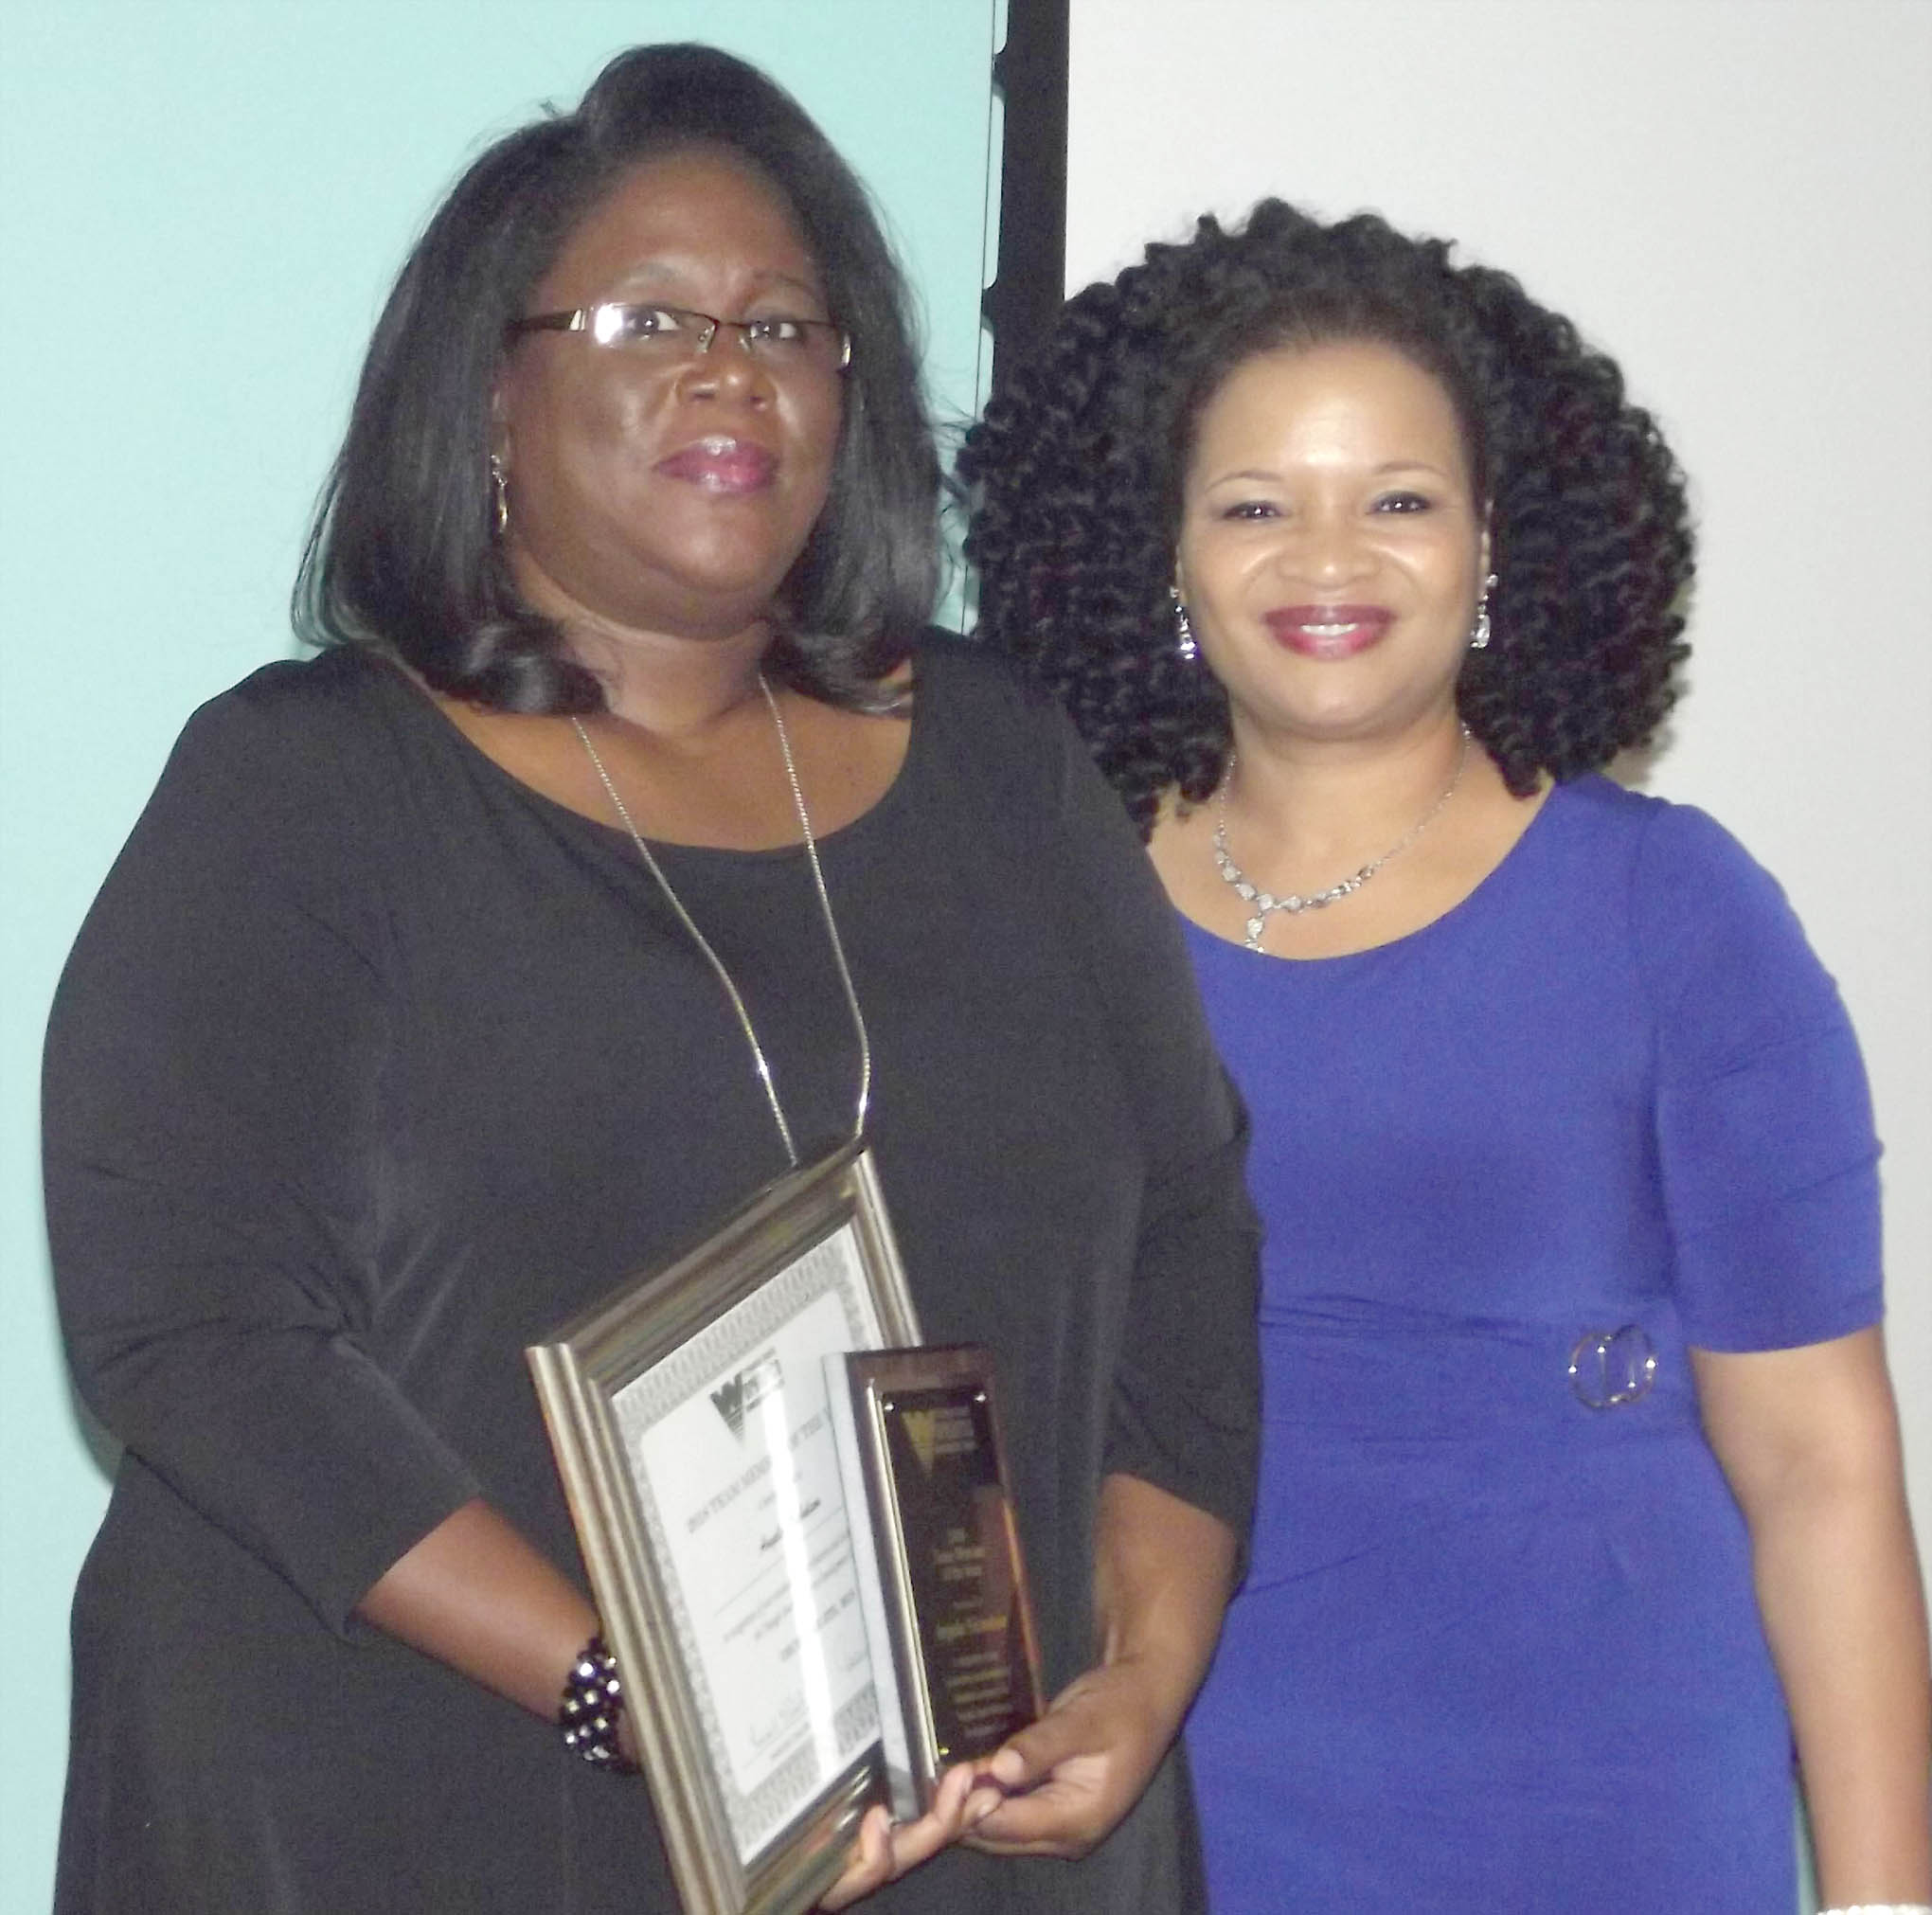 Click to enlarge,  Angela Nicholson received the Team Member of the Year Award at the 7th Annual Triangle South Workforce Development Board (TSWDB) Awards Banquet held Wednesday, Dec. 5, at the Central Carolina Community College Harnett Health Sciences Center in Lillington. Presenting the award was Rosalind Cross, TSWDB Director.